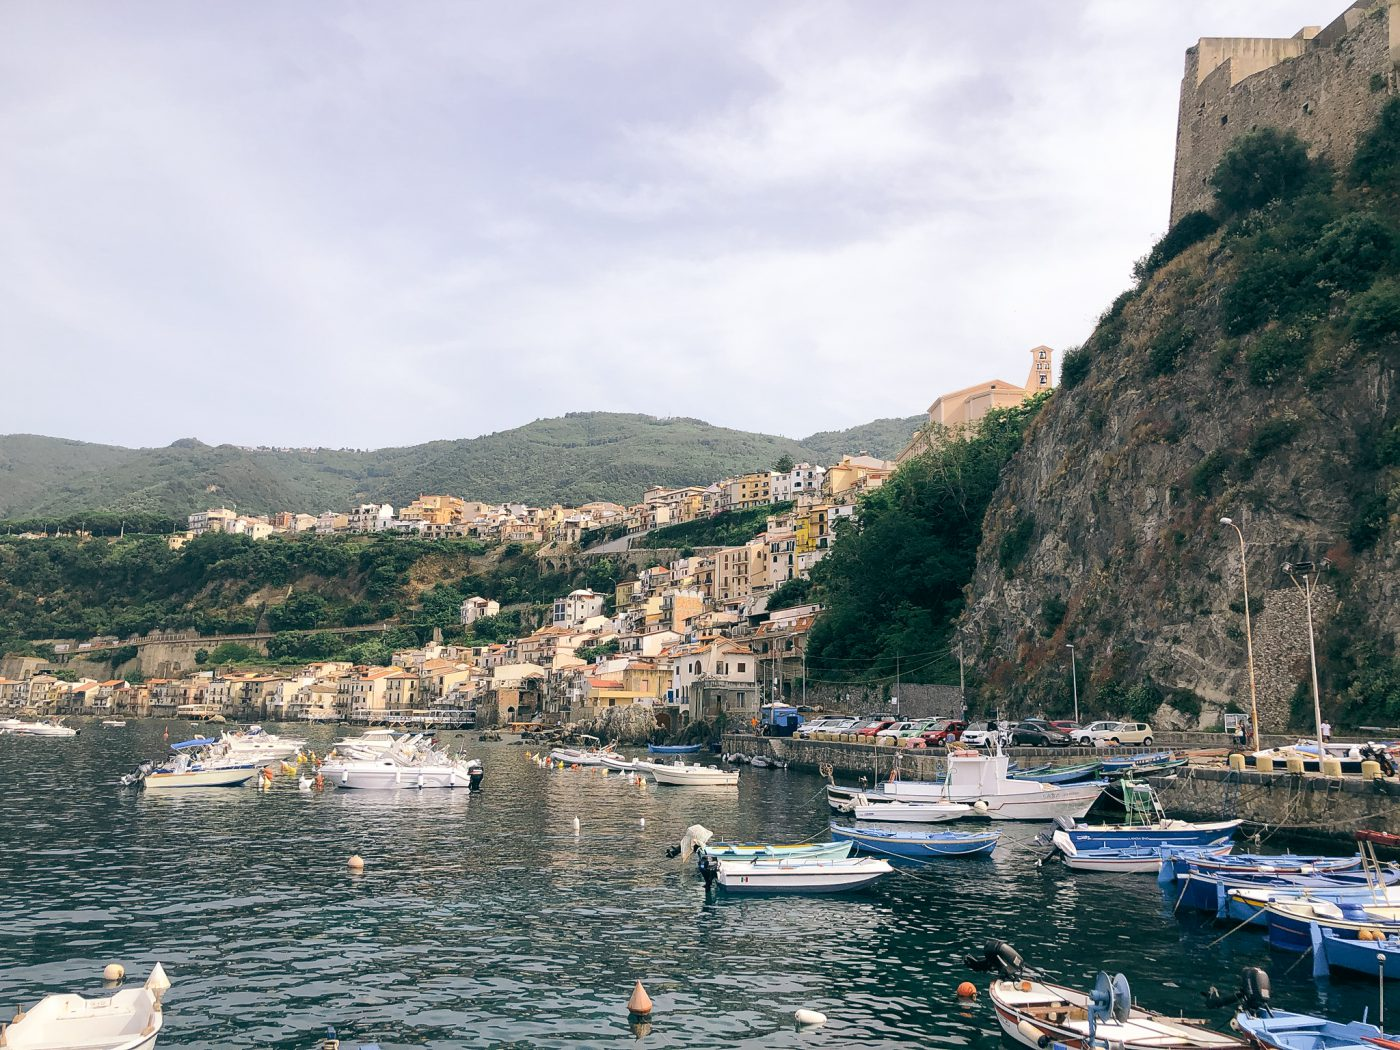 Calabria A 4-Day Road Trip Through The Toe of the Boot